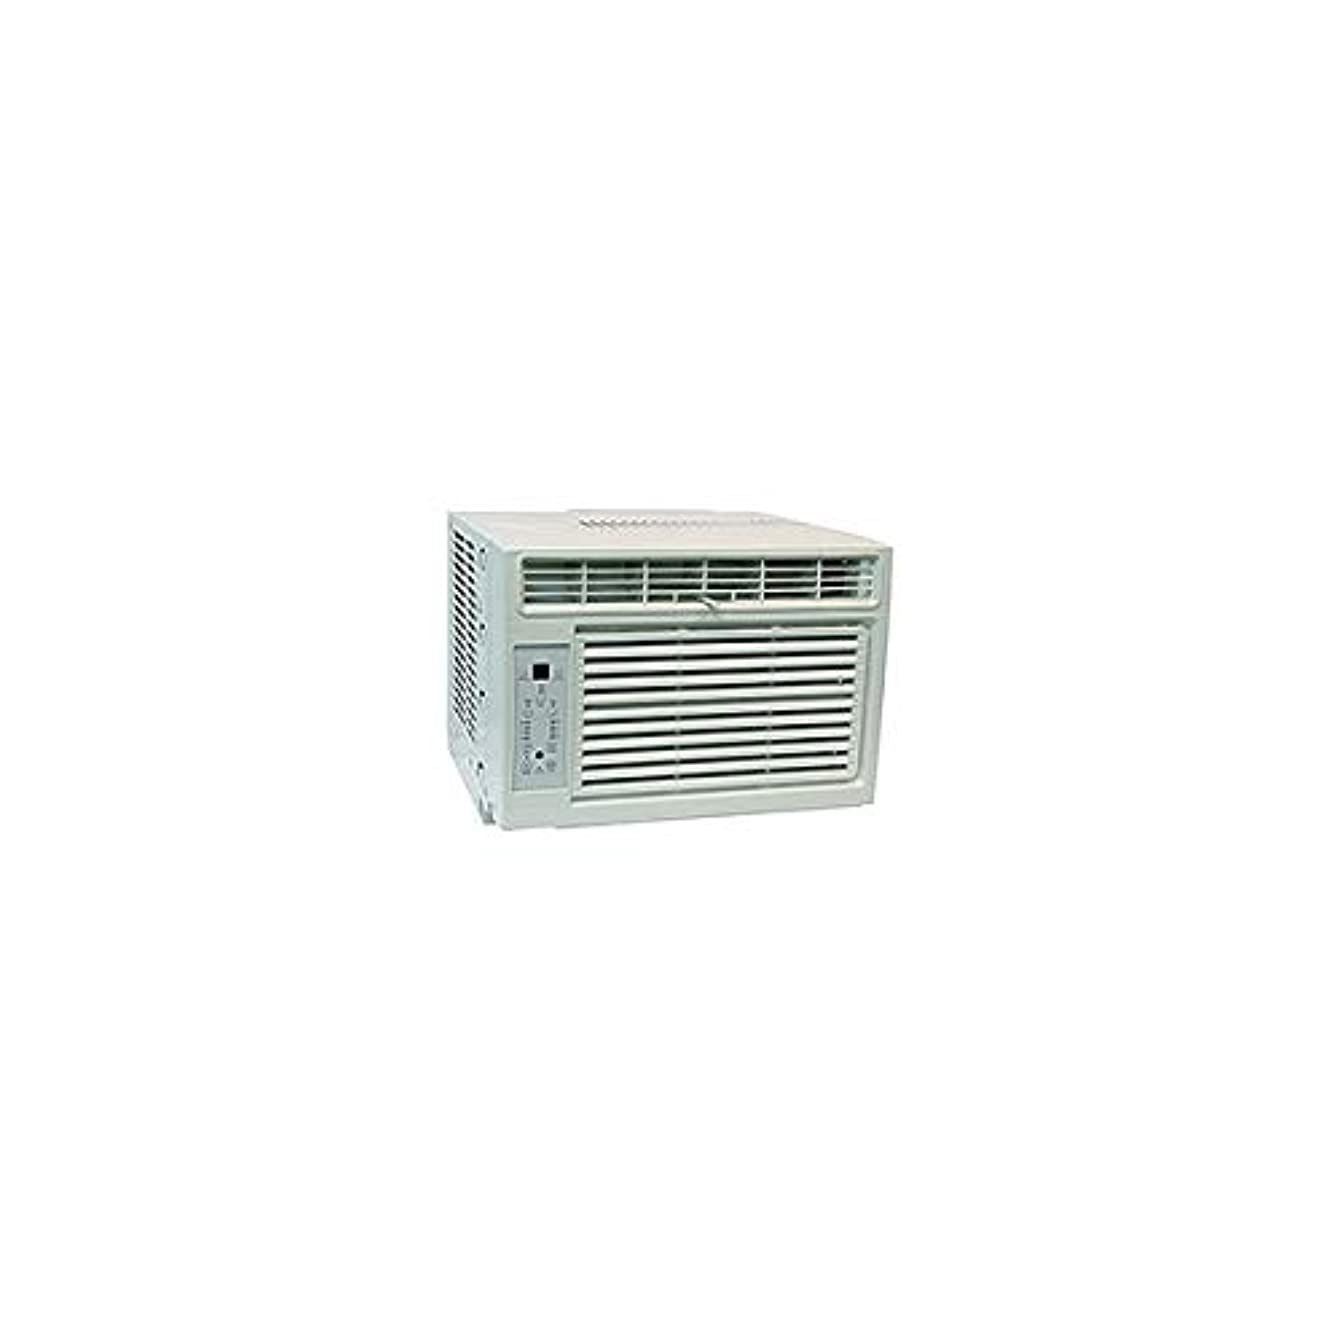 Comfort-Aire RADS-81M 4-Way Room Air Conditioner With Remote Pack of 1